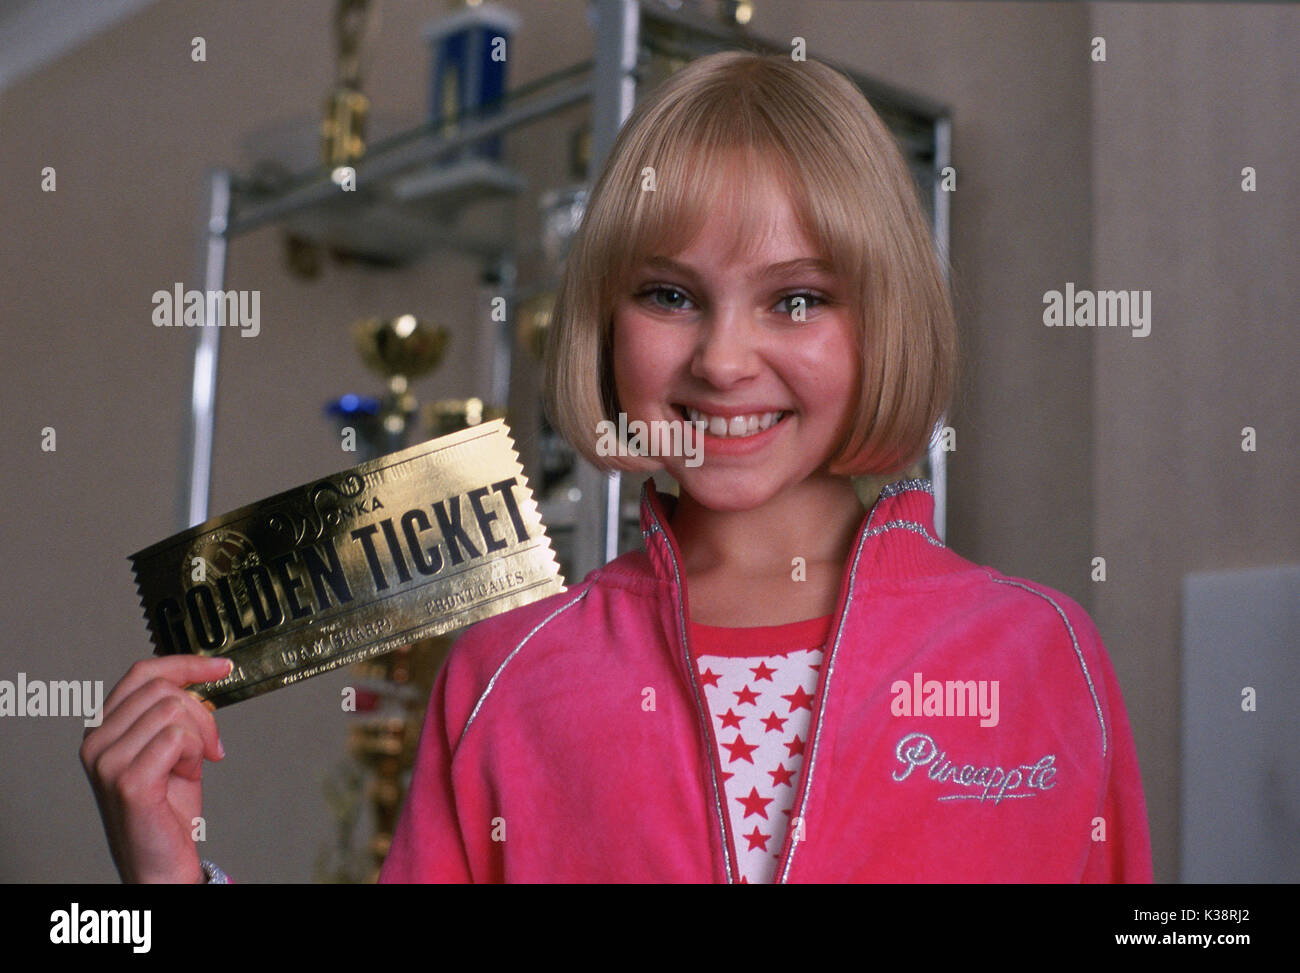 CHARLIE AND THE CHOCOLATE FACTORY ANNASOPHIA ROBB as Violet Stock Photo -  Alamy